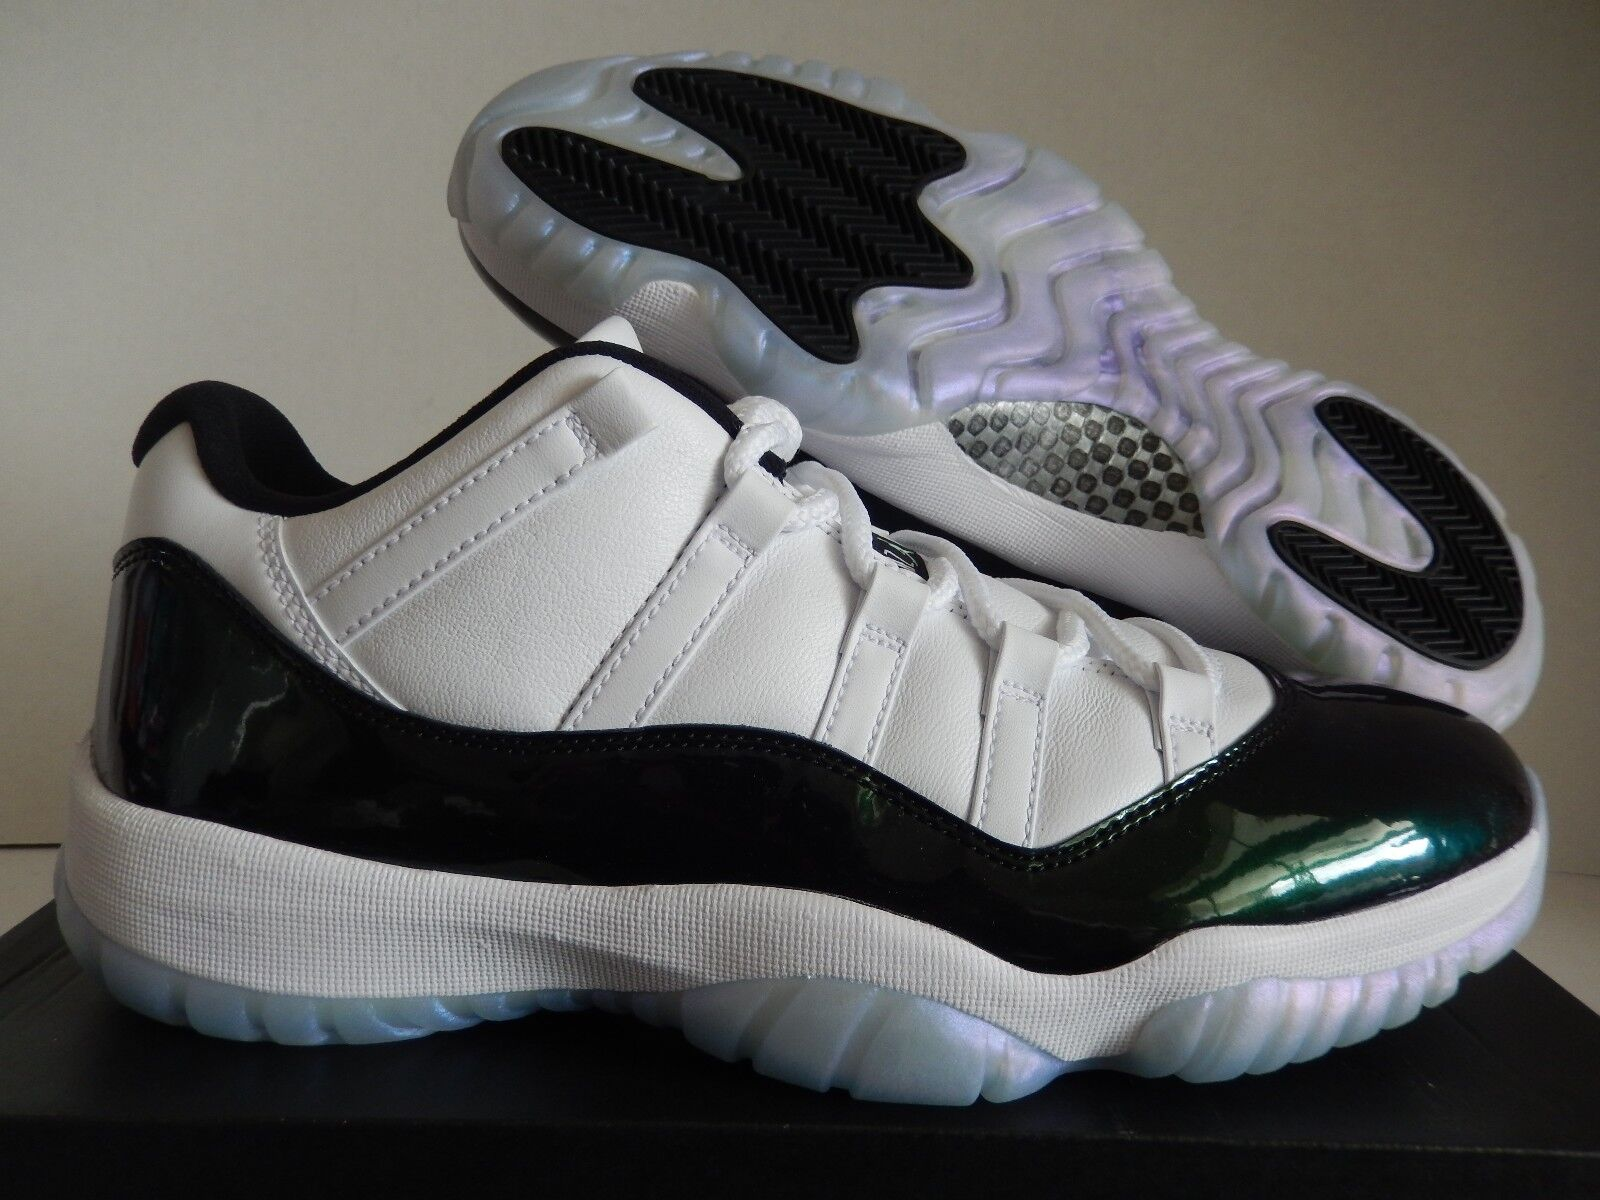 NIKE AIR JORDAN 11 RETRO LOW WHITE-BLACK-EMERALD